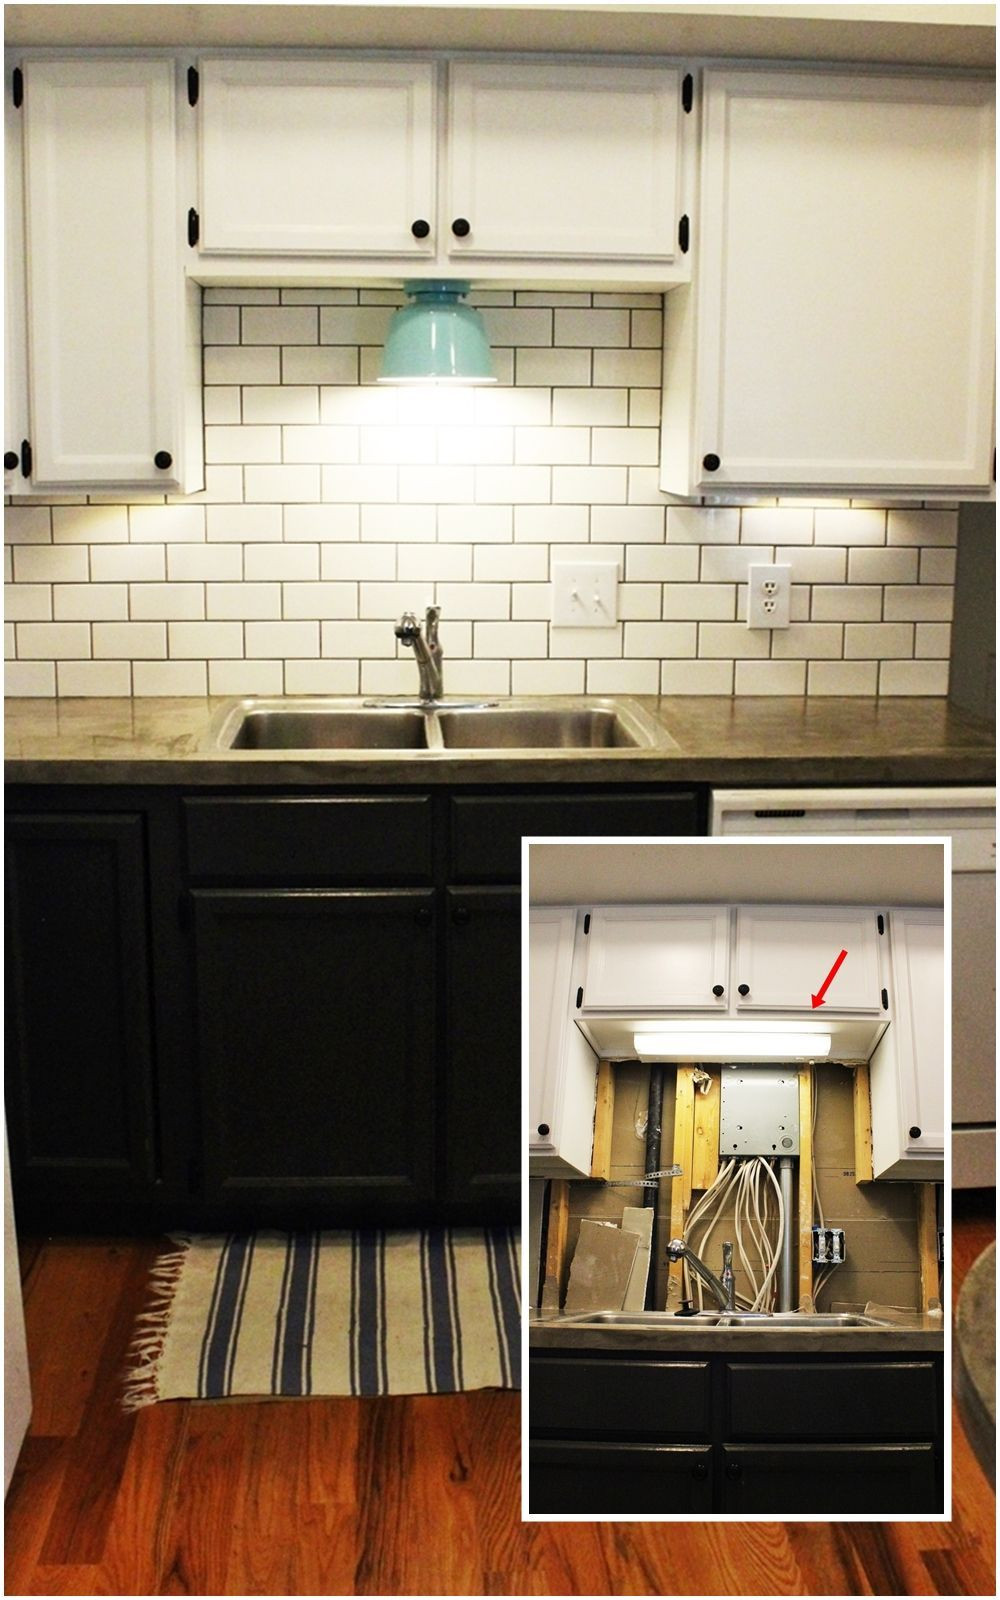 Best ideas about DIY Under Cabinet Led Lighting . Save or Pin DIY Kitchen Lighting Upgrade LED Under Cabinet Lights Now.